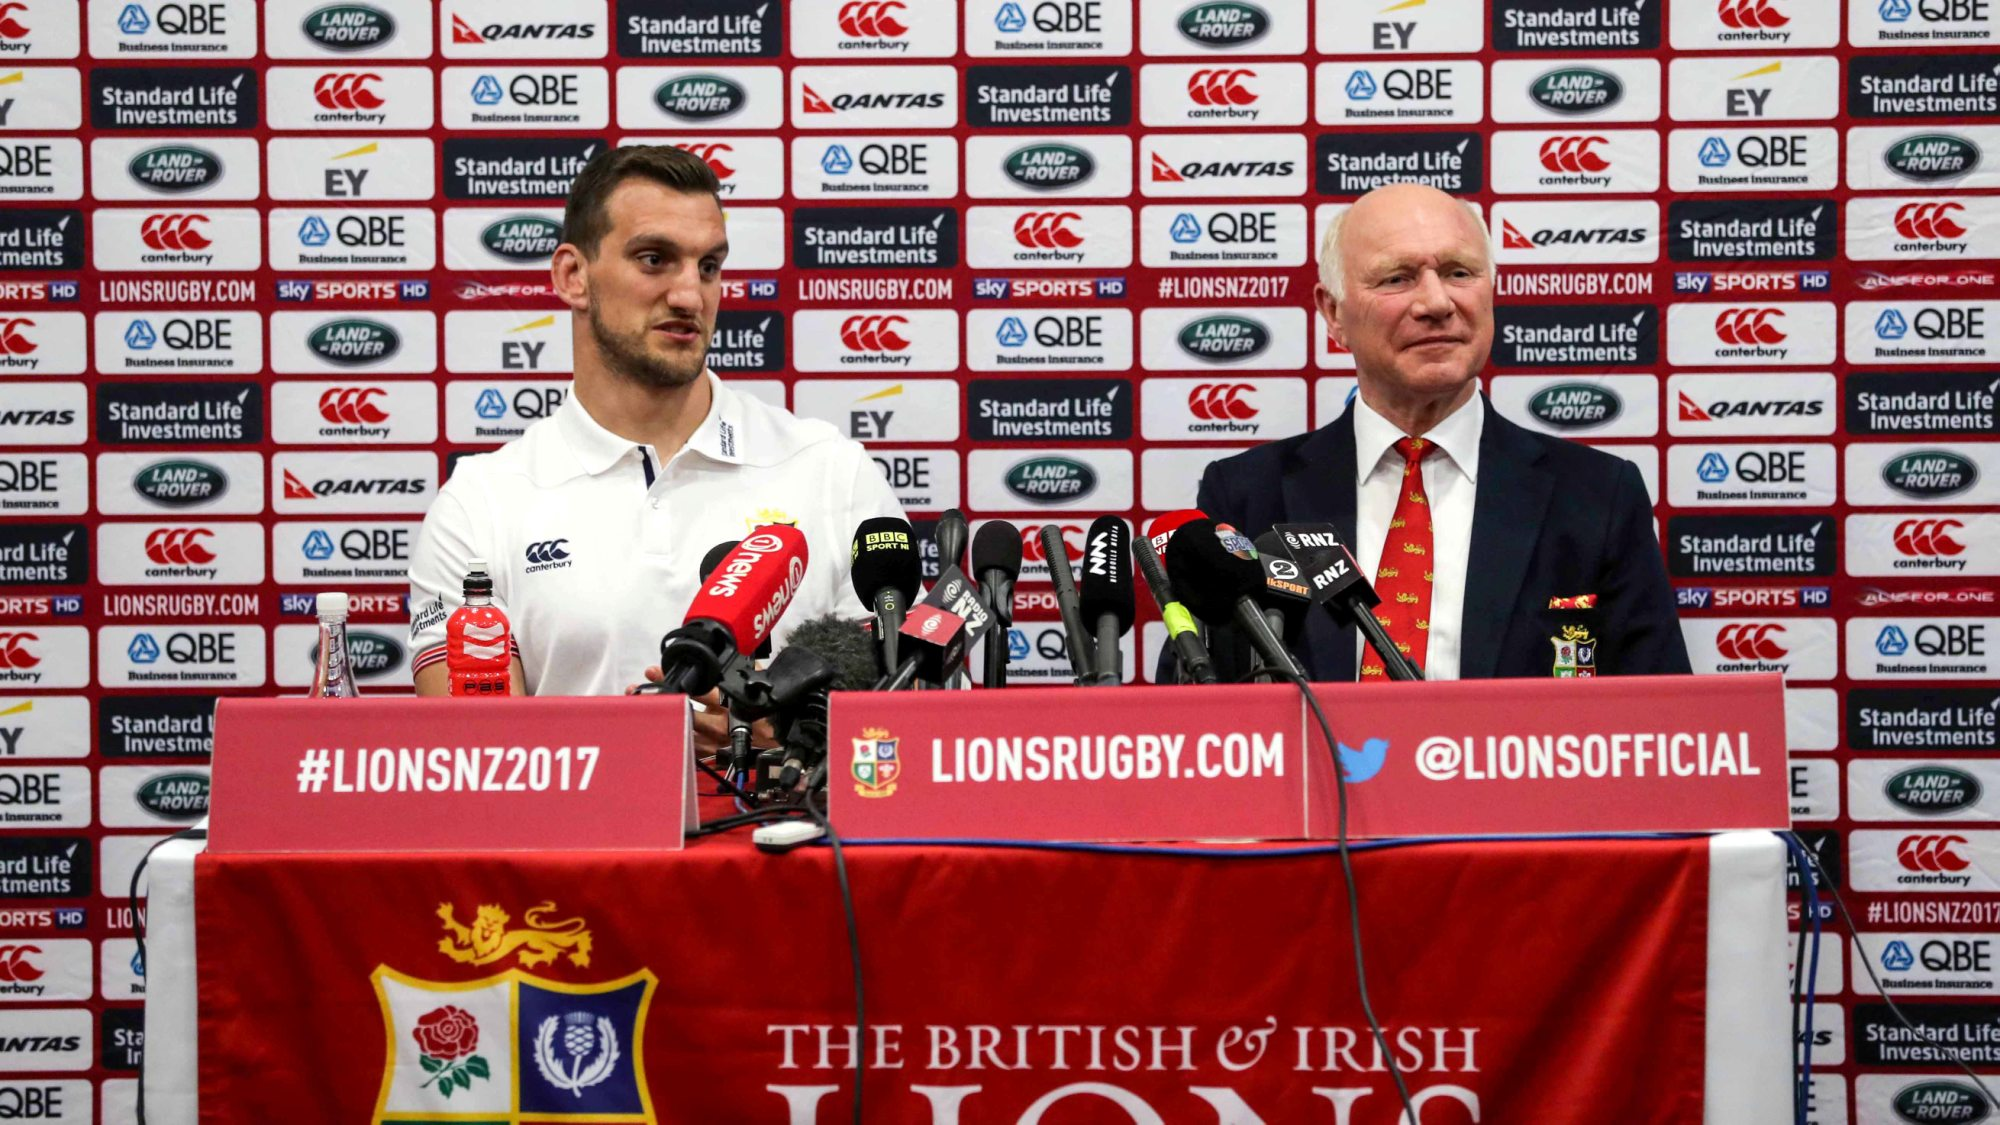 British & Irish Lions team to play New Zealand Provincial Barbarians